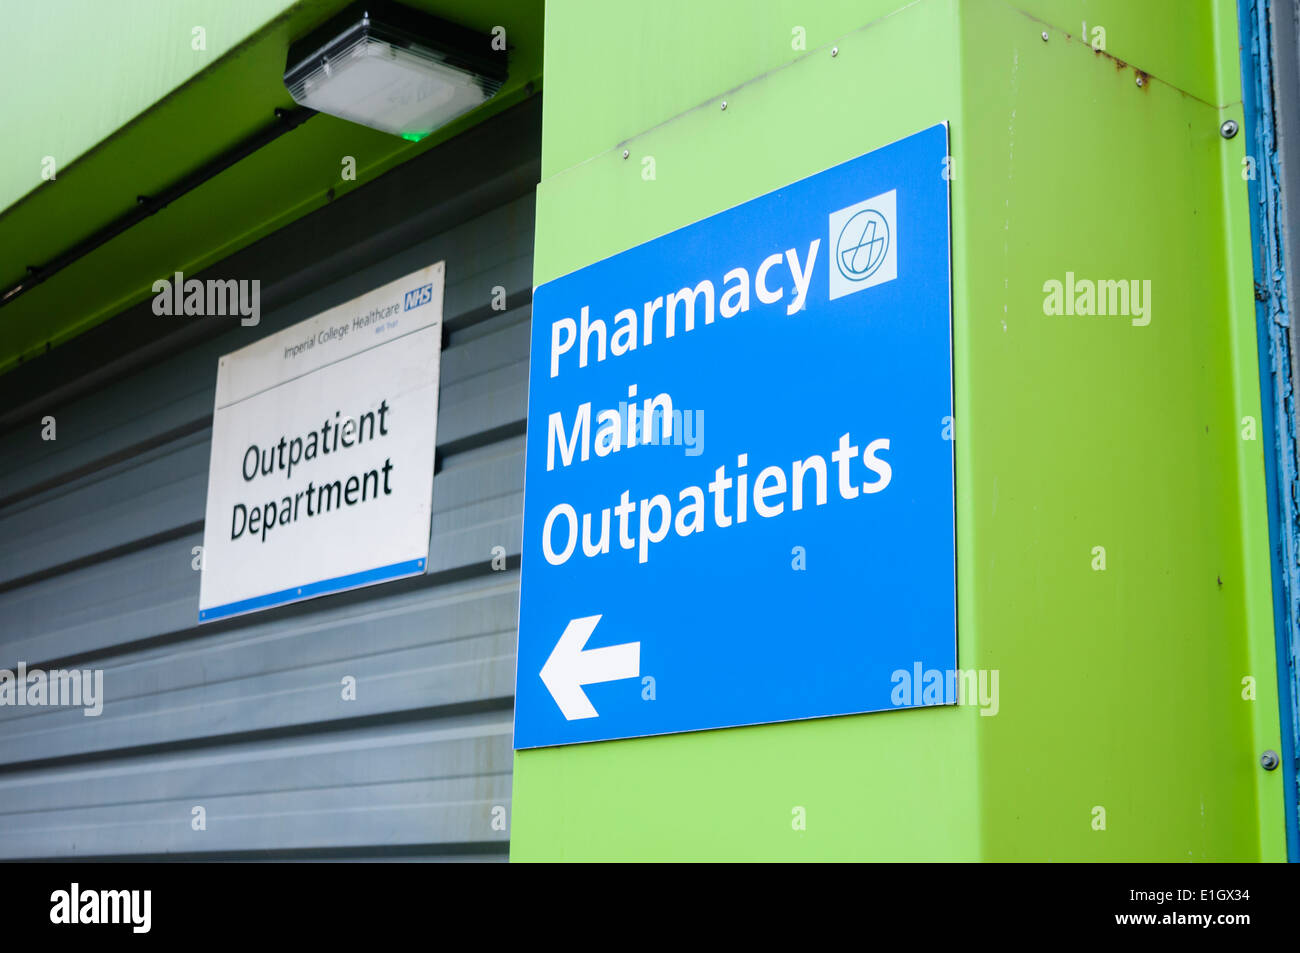 Sign for Pharmacy and Main Outpatients at a UK hospital - Stock Image